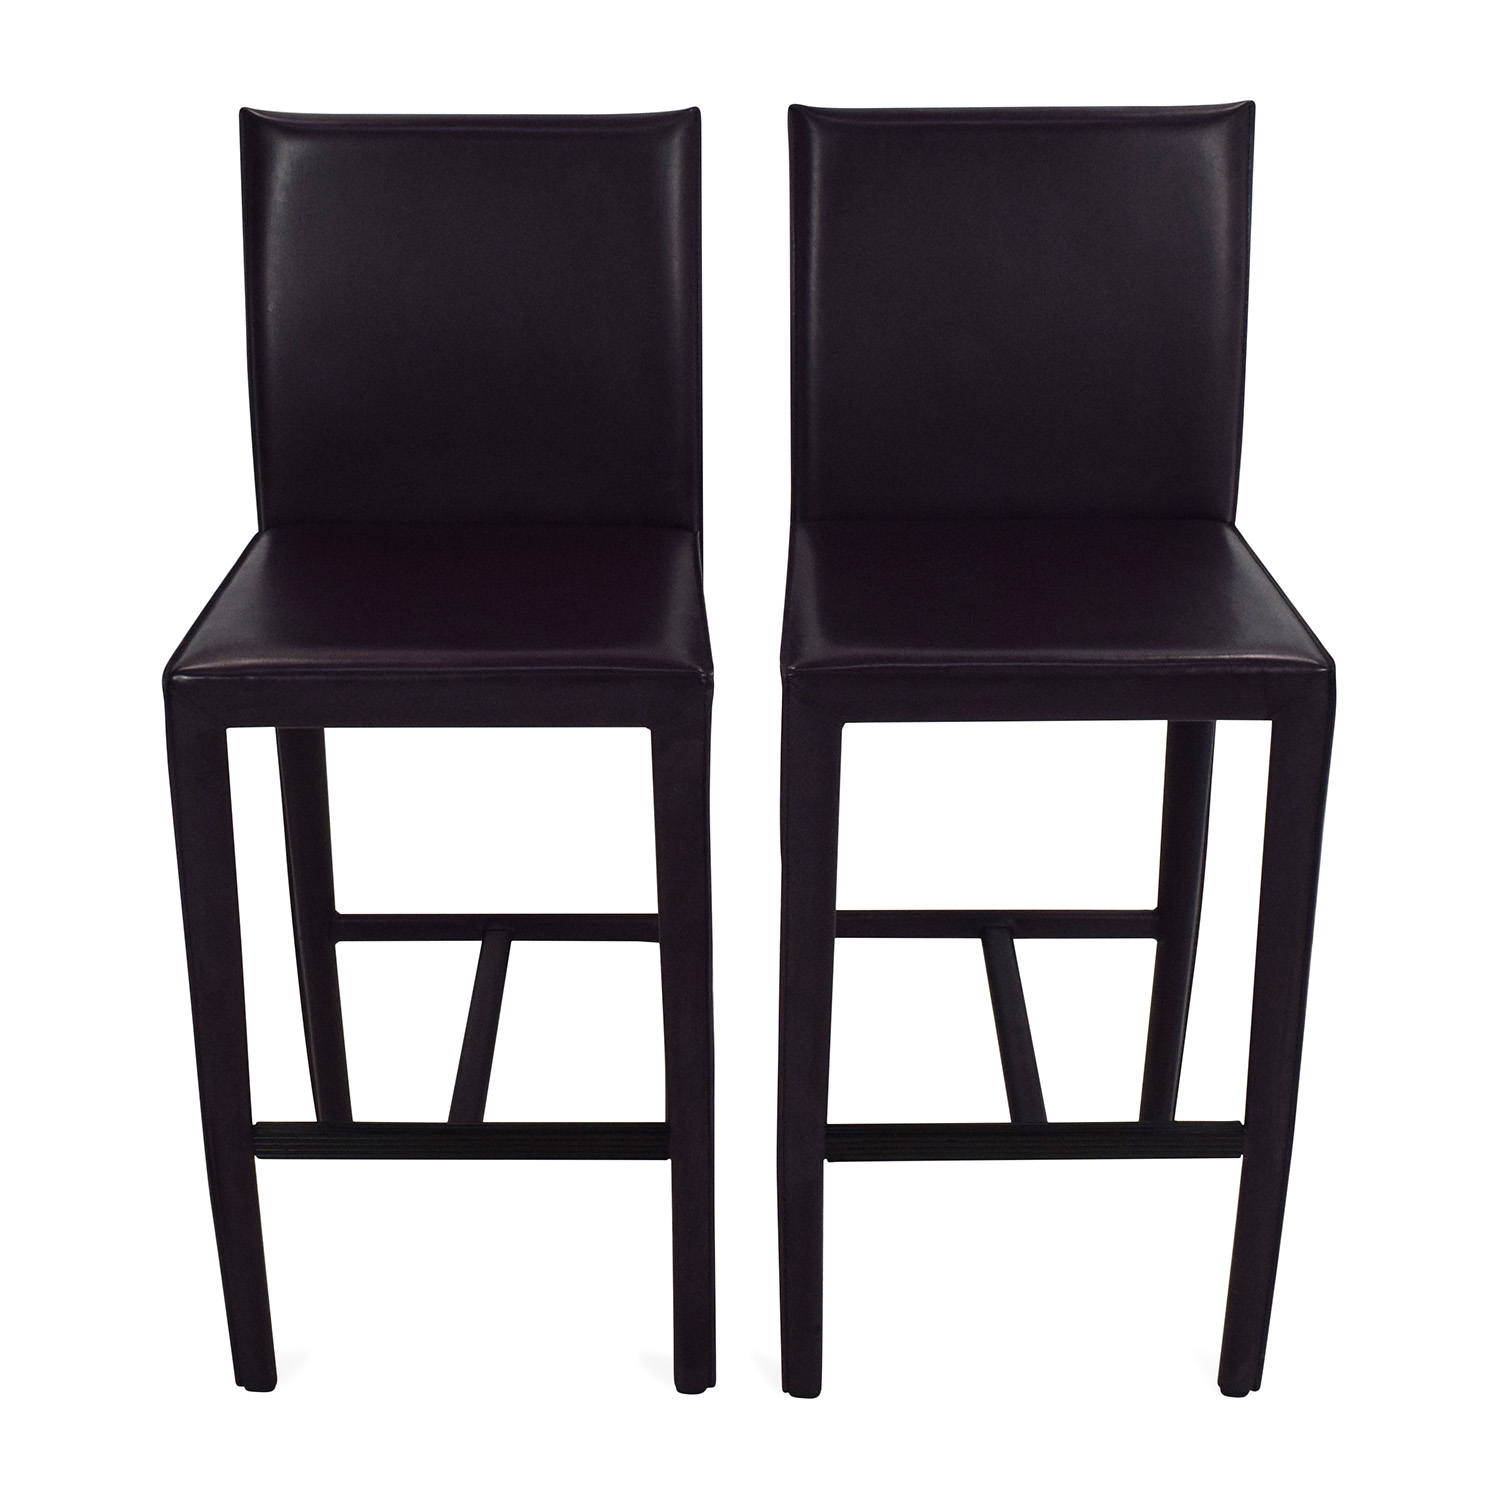 Crate and Barrel Crate & Barrel Folio Leather Barstools on sale